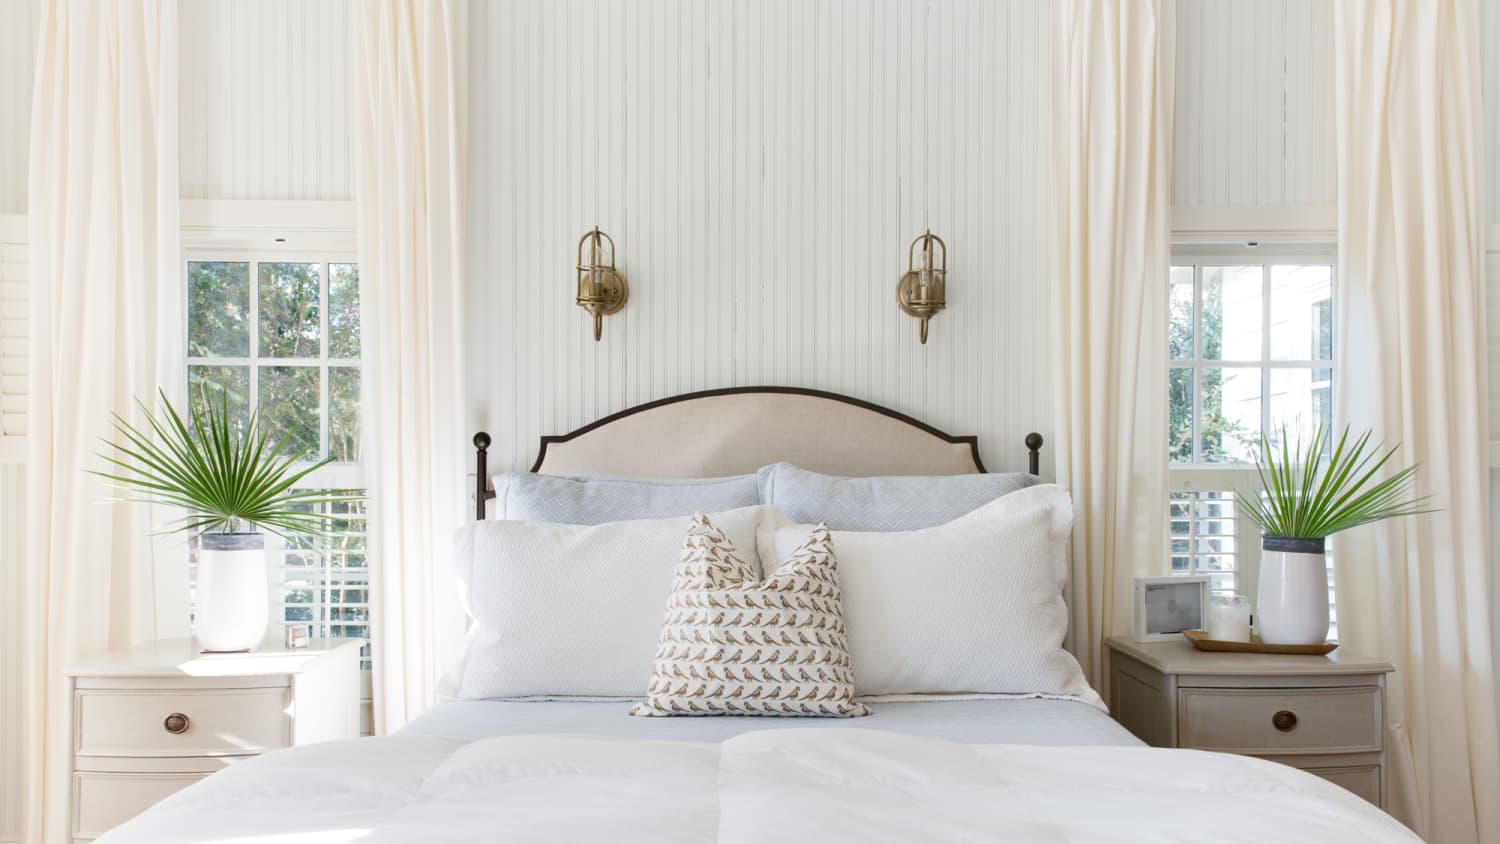 10 Ways To Make A Big Bedroom Feel Cozy Apartment Therapy